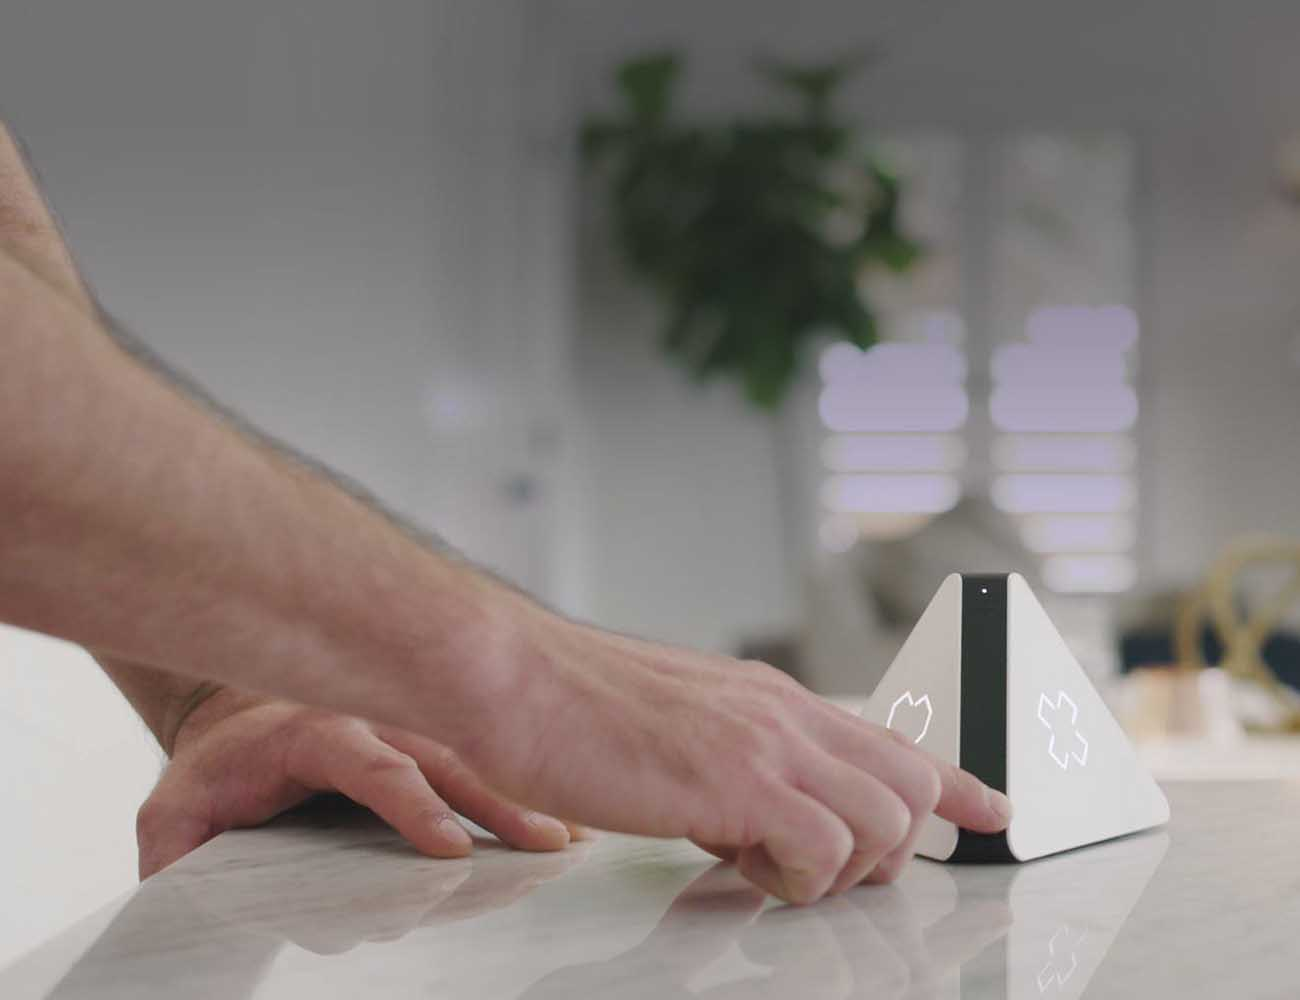 Prizm – Turn Your Speakers Into A Learning Music Player